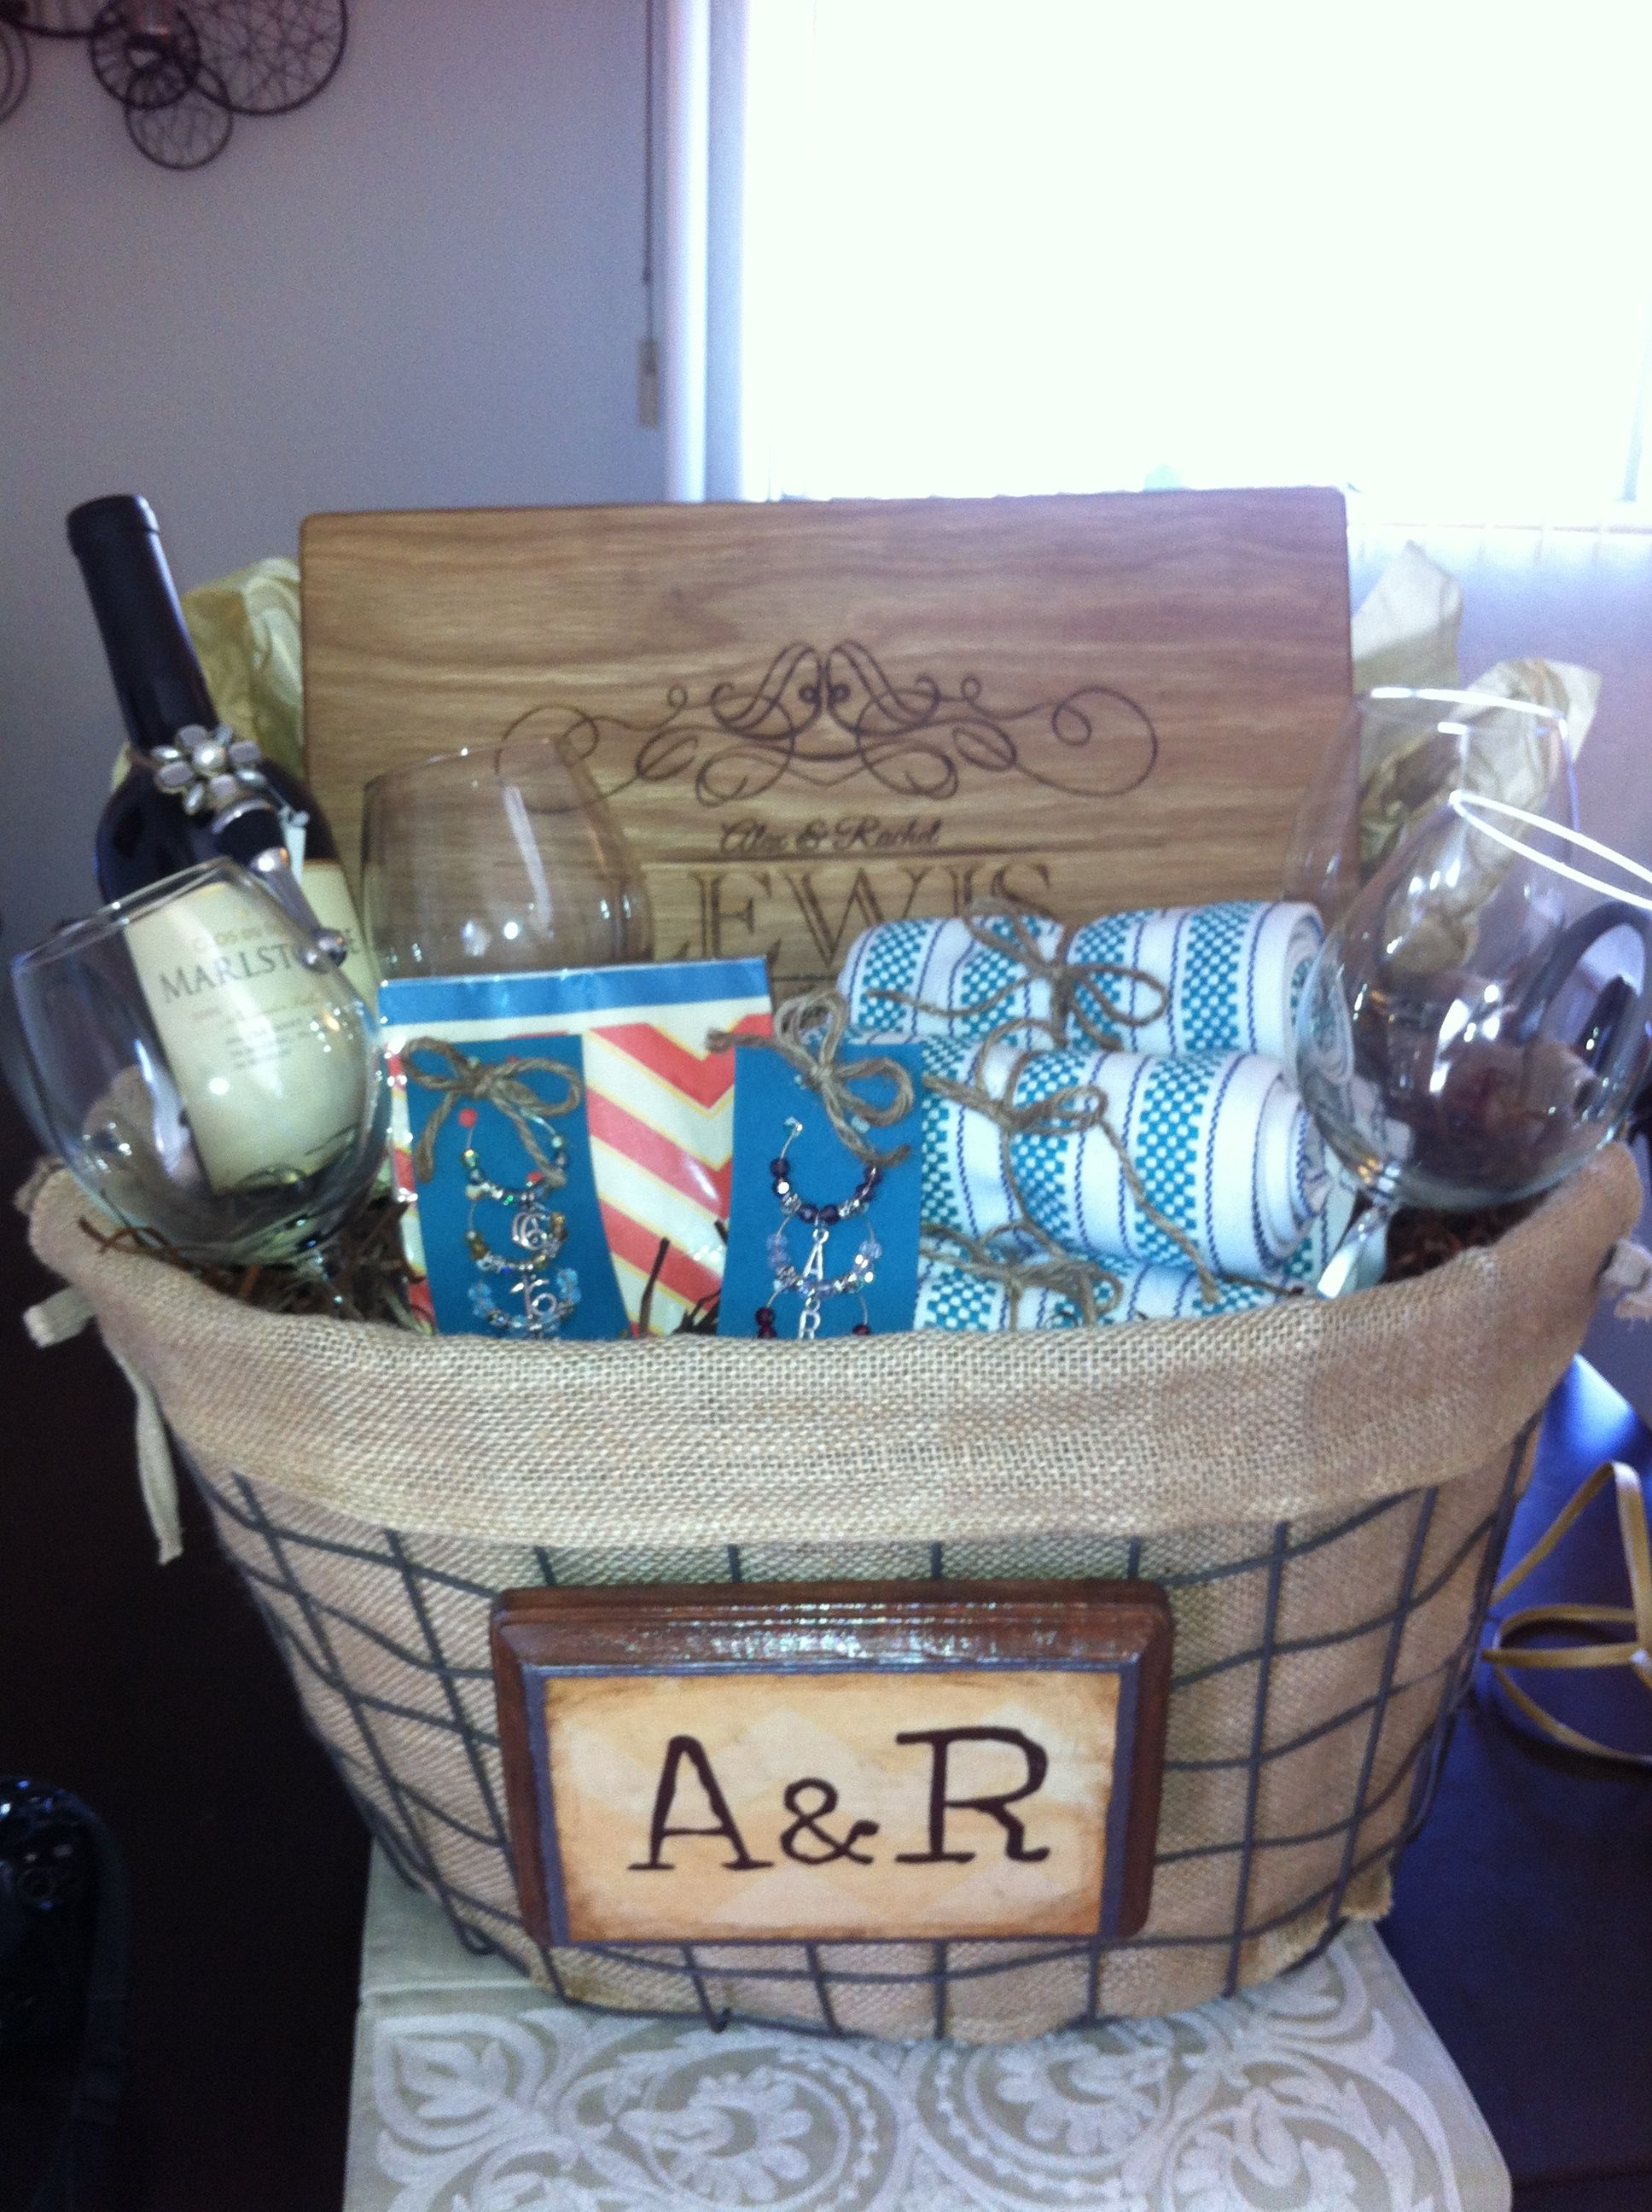 Wedding Gift Basket Wine : wine gift baskets cheese gifts housewarming gift baskets wedding gift ...